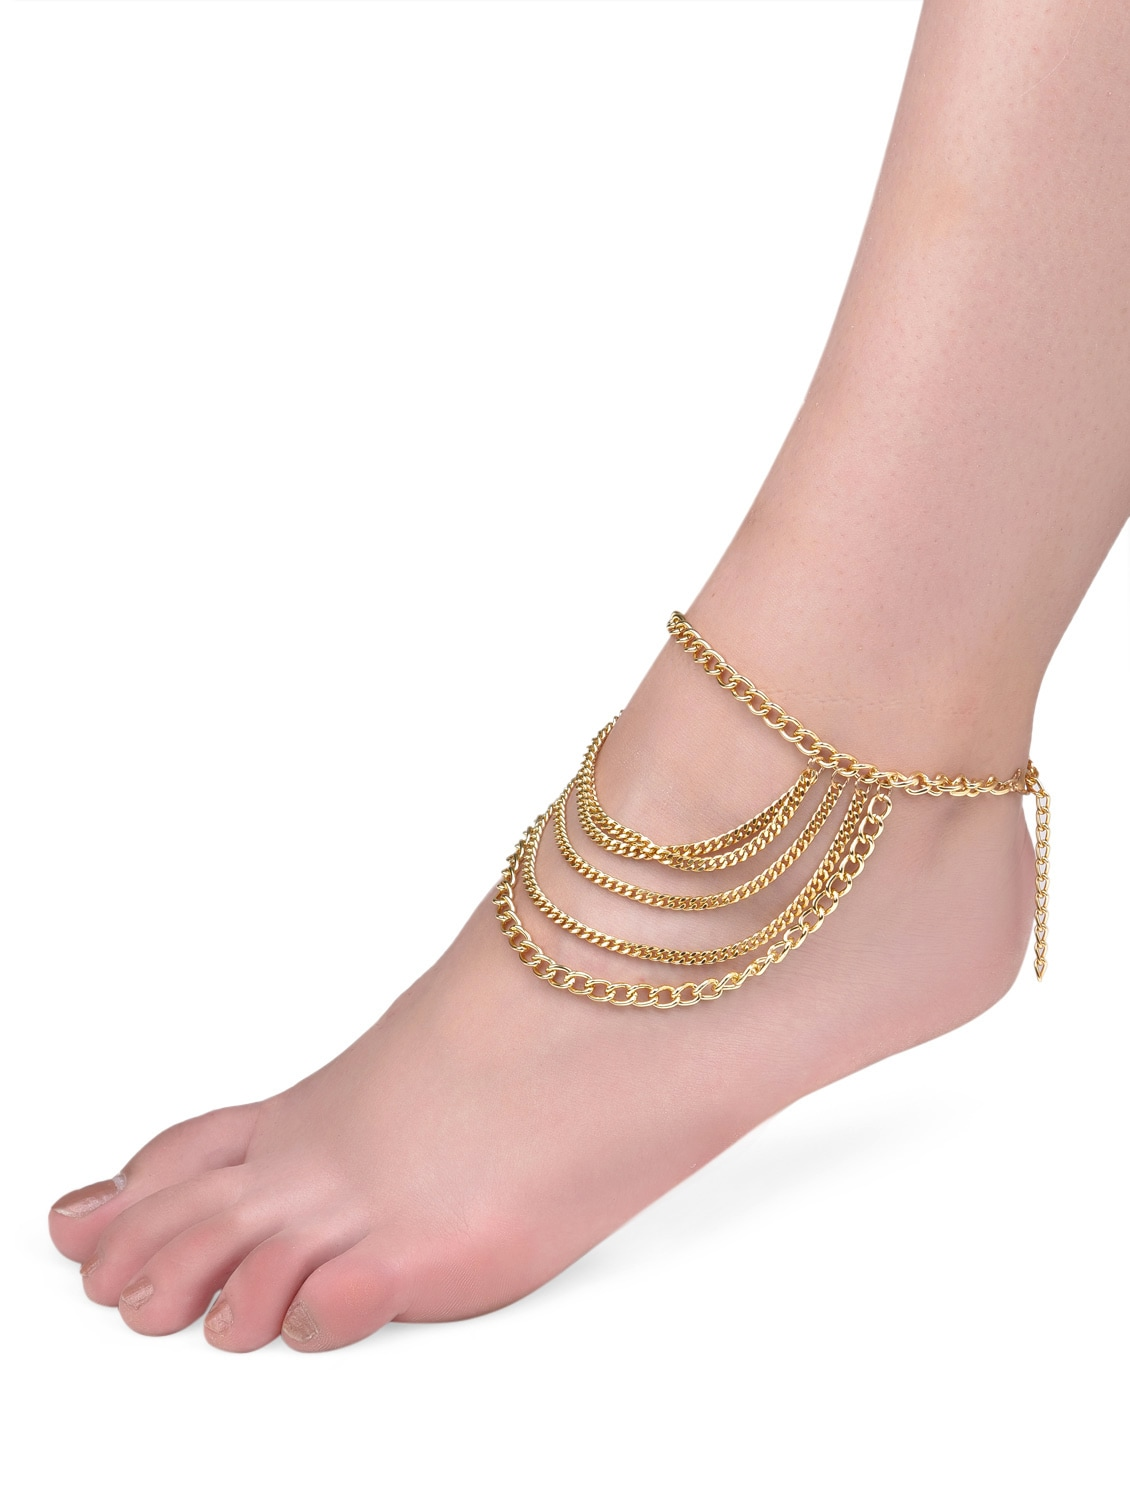 bracelet accessories color anklet from leg wholesale chain jewelry online foot anklets women fashion item for gold plated in bridal